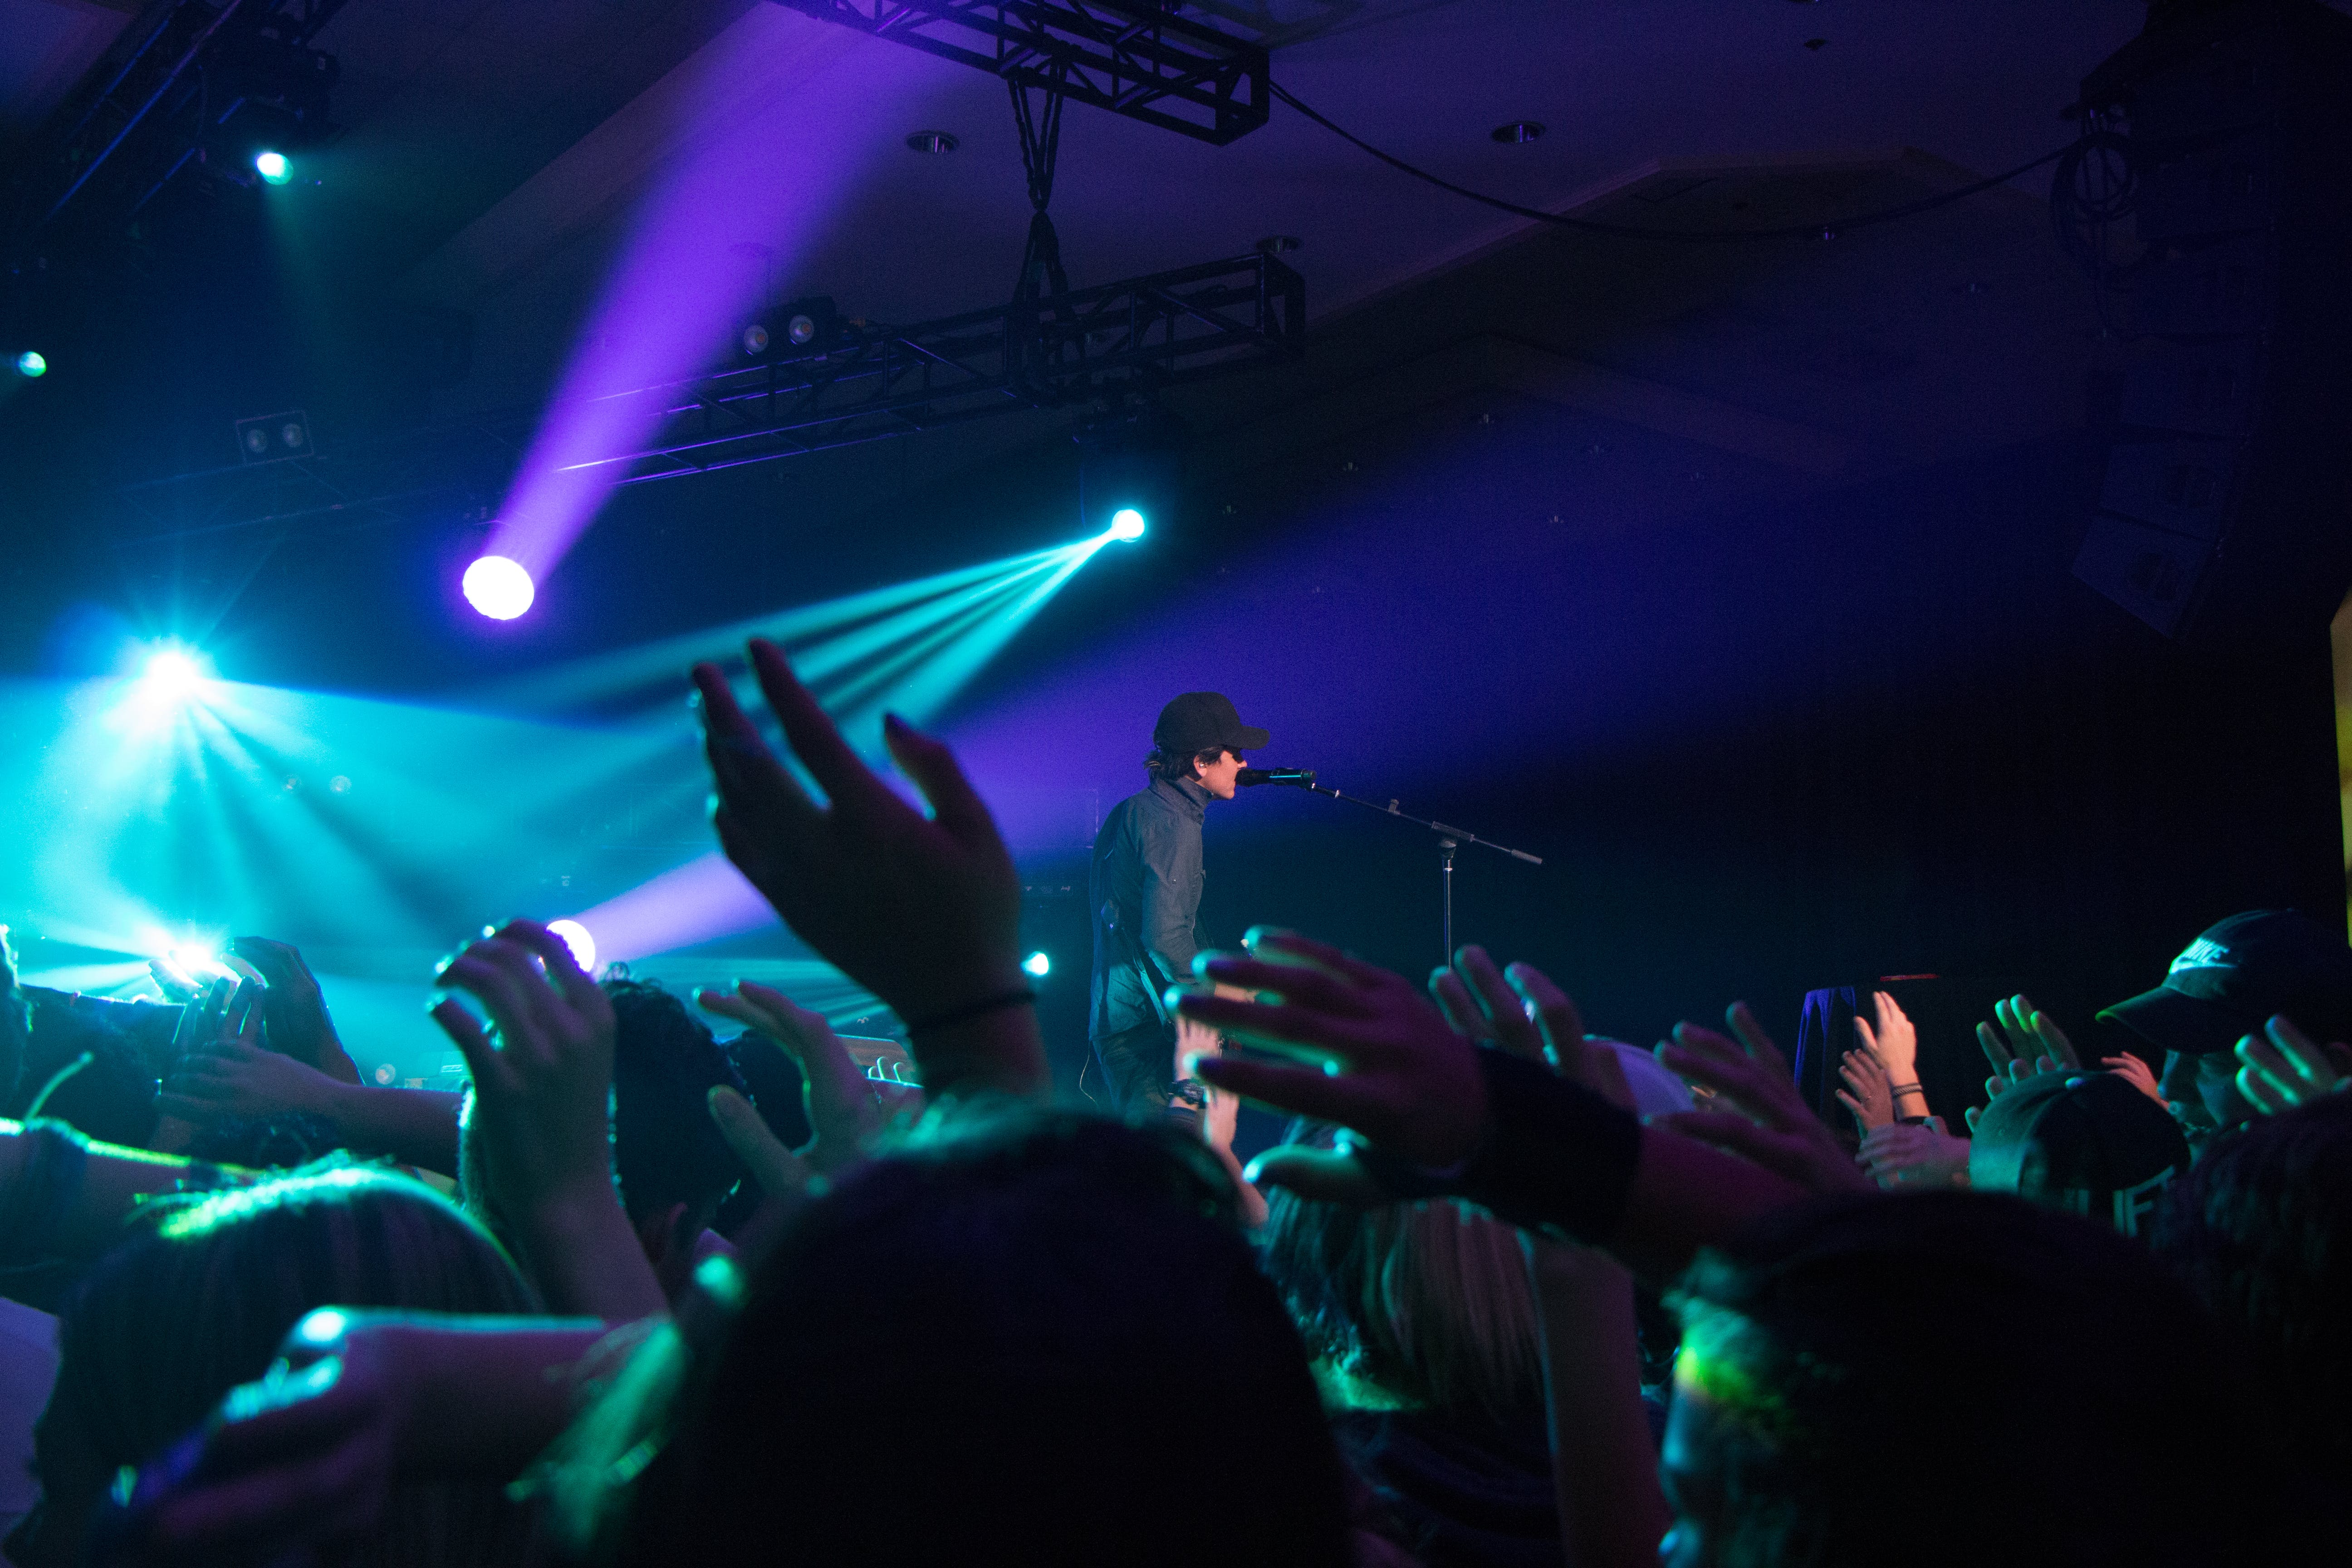 Man Singing on Stage With Stage Lights Near Crowd